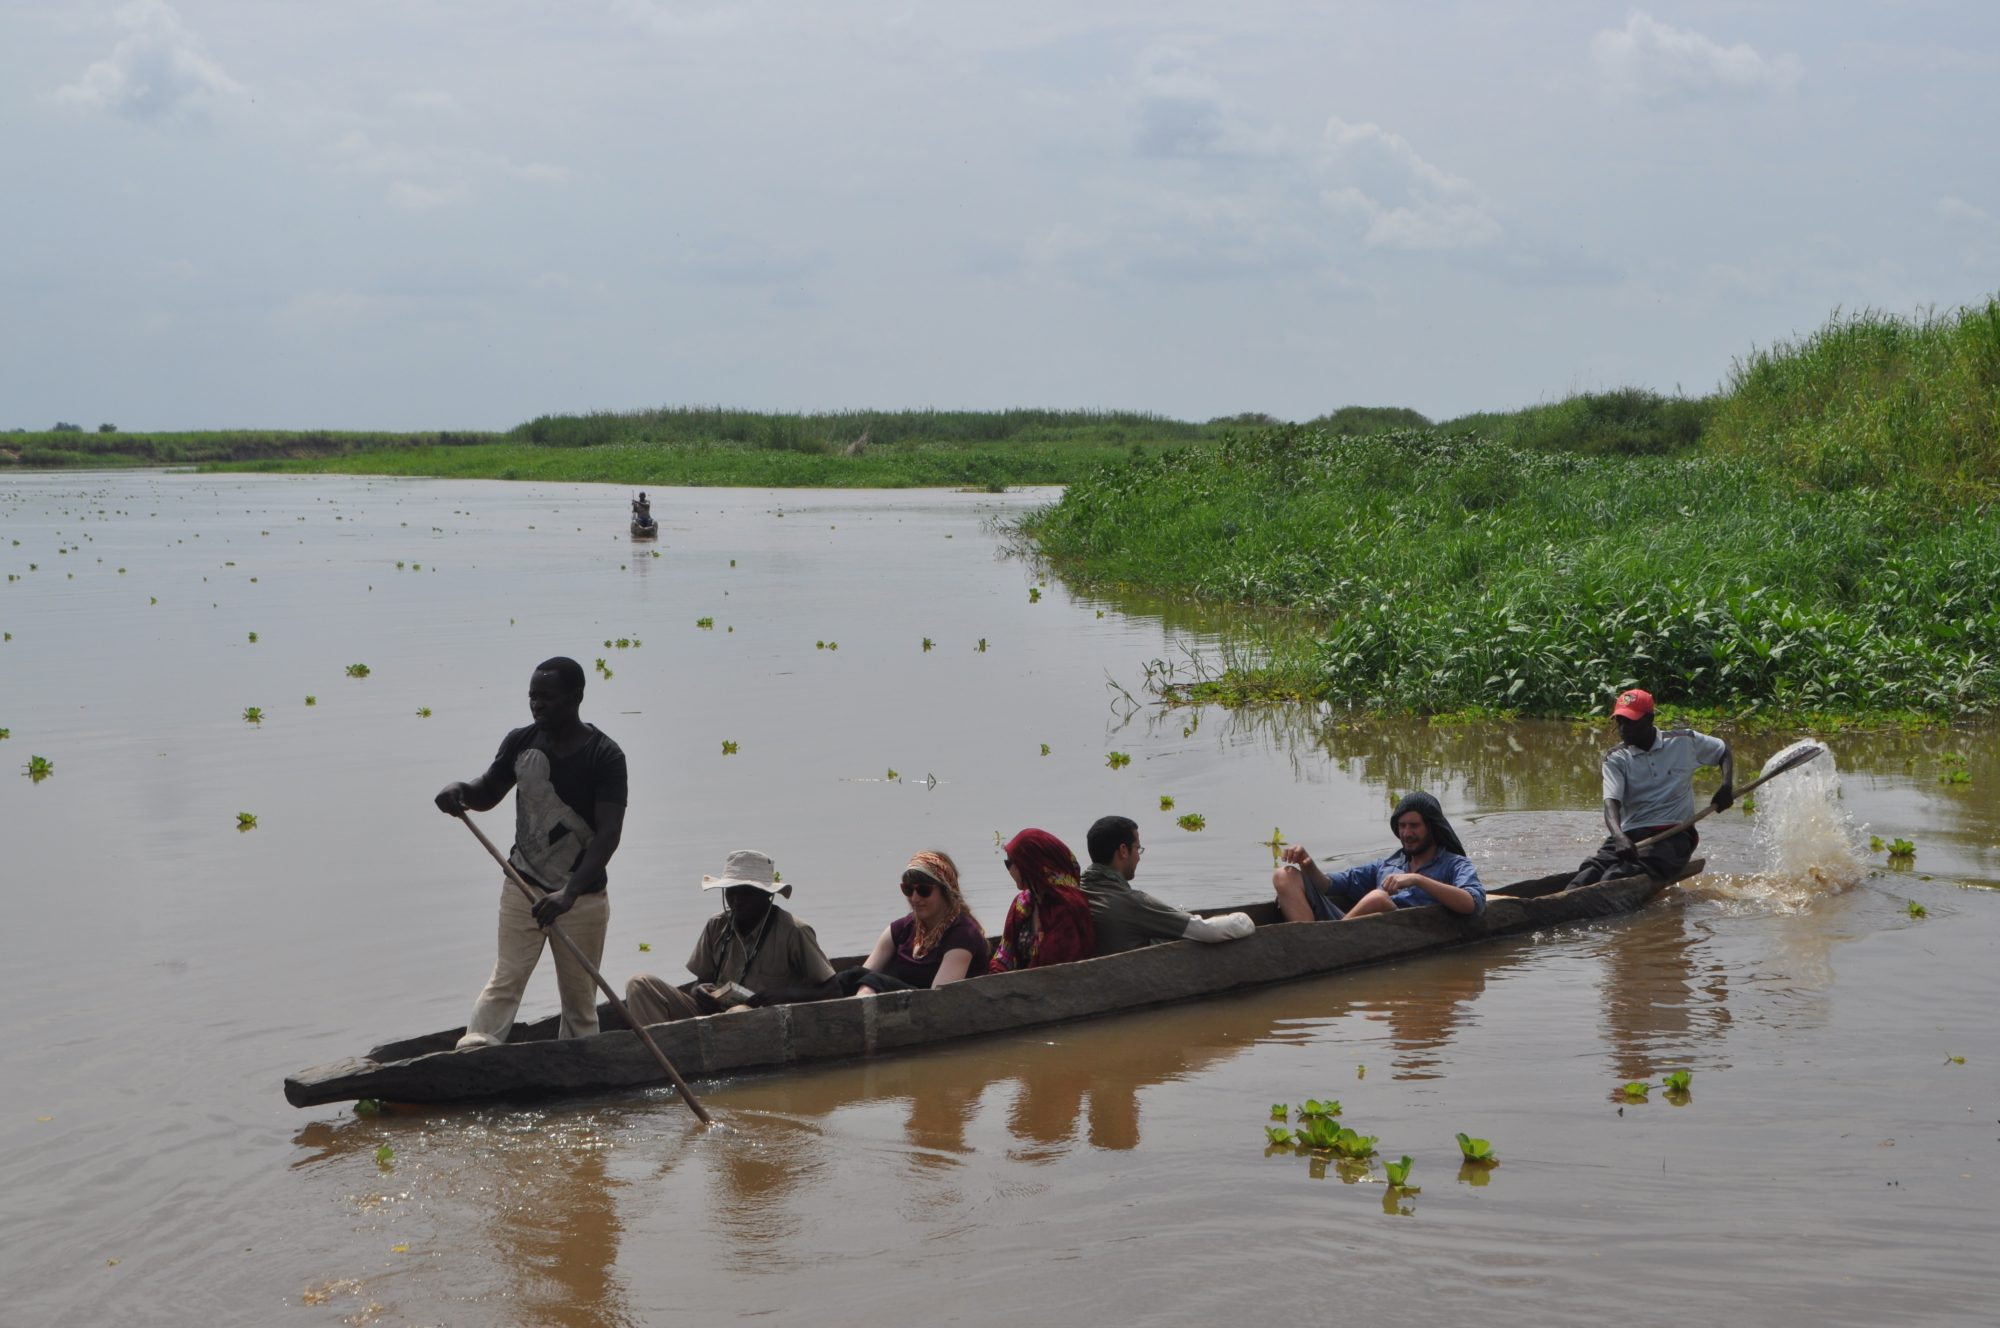 Students on Canoe Safari, Kilombero